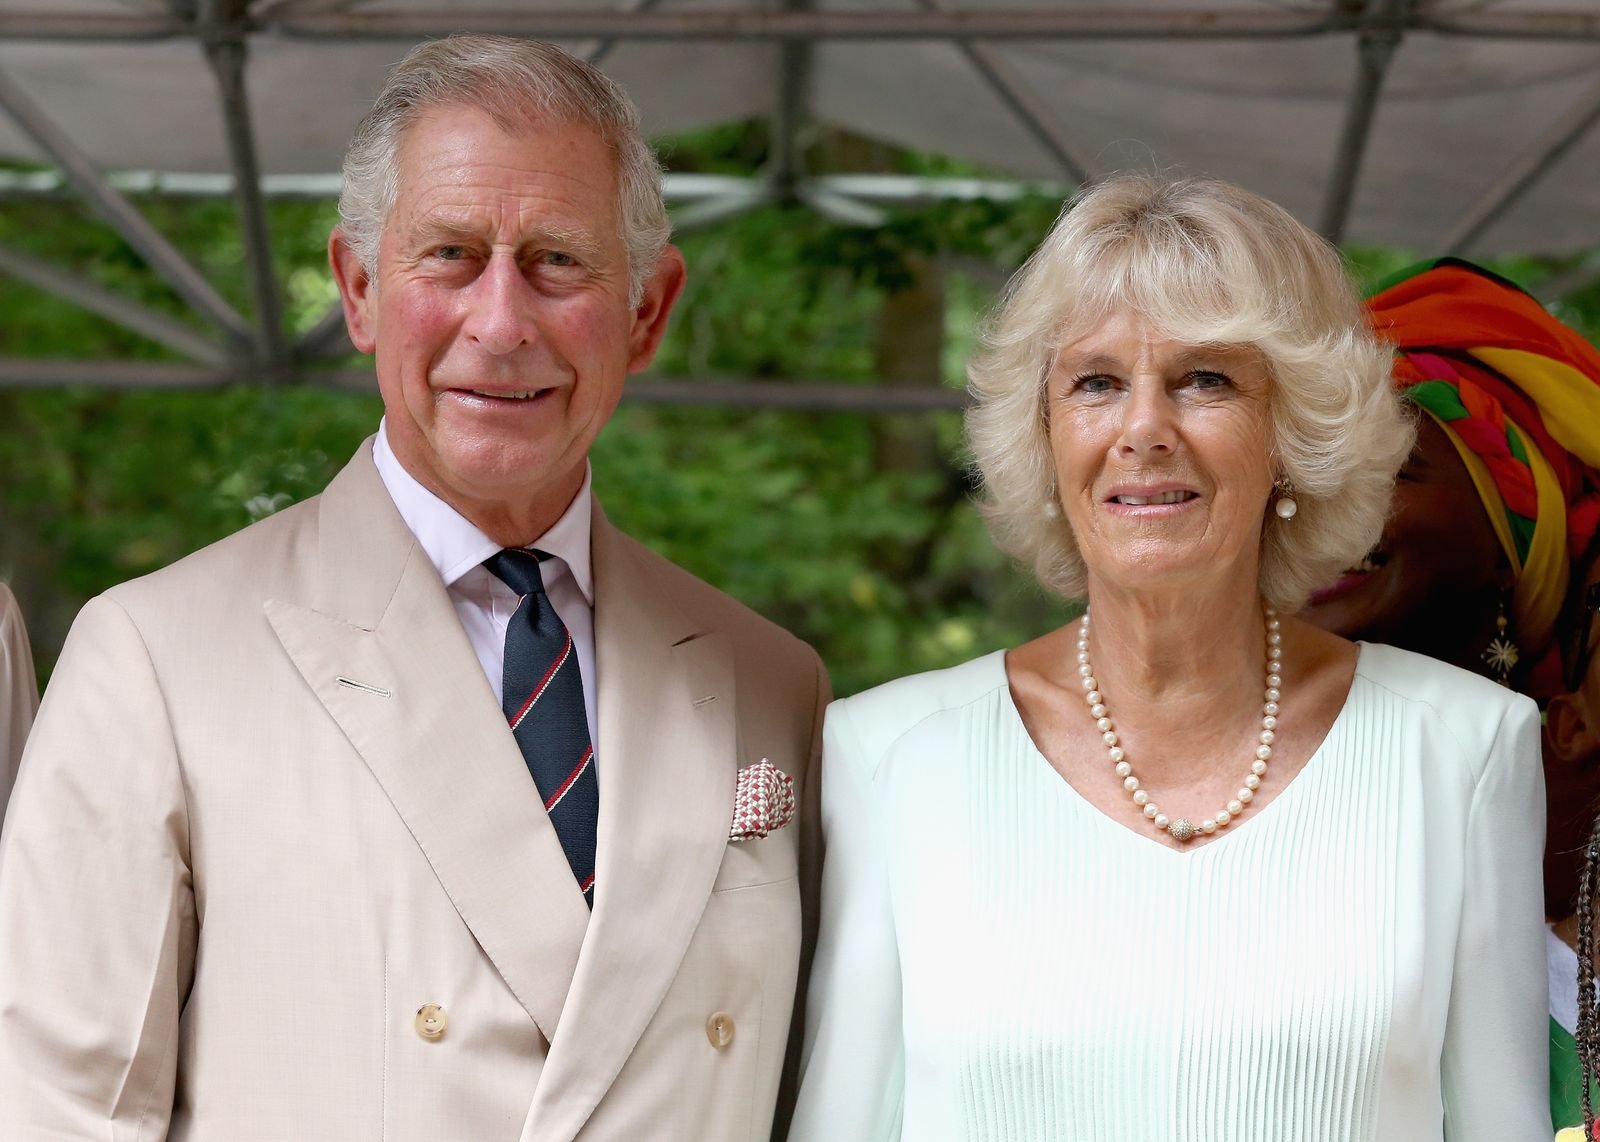 Camilla, Duchess of Cornwall and Prince Charles, Prince of Wales on a visit to the Museo del Oro Zenu on October 31, 2014 in Cartagena, Colombia | Photo: Getty Images